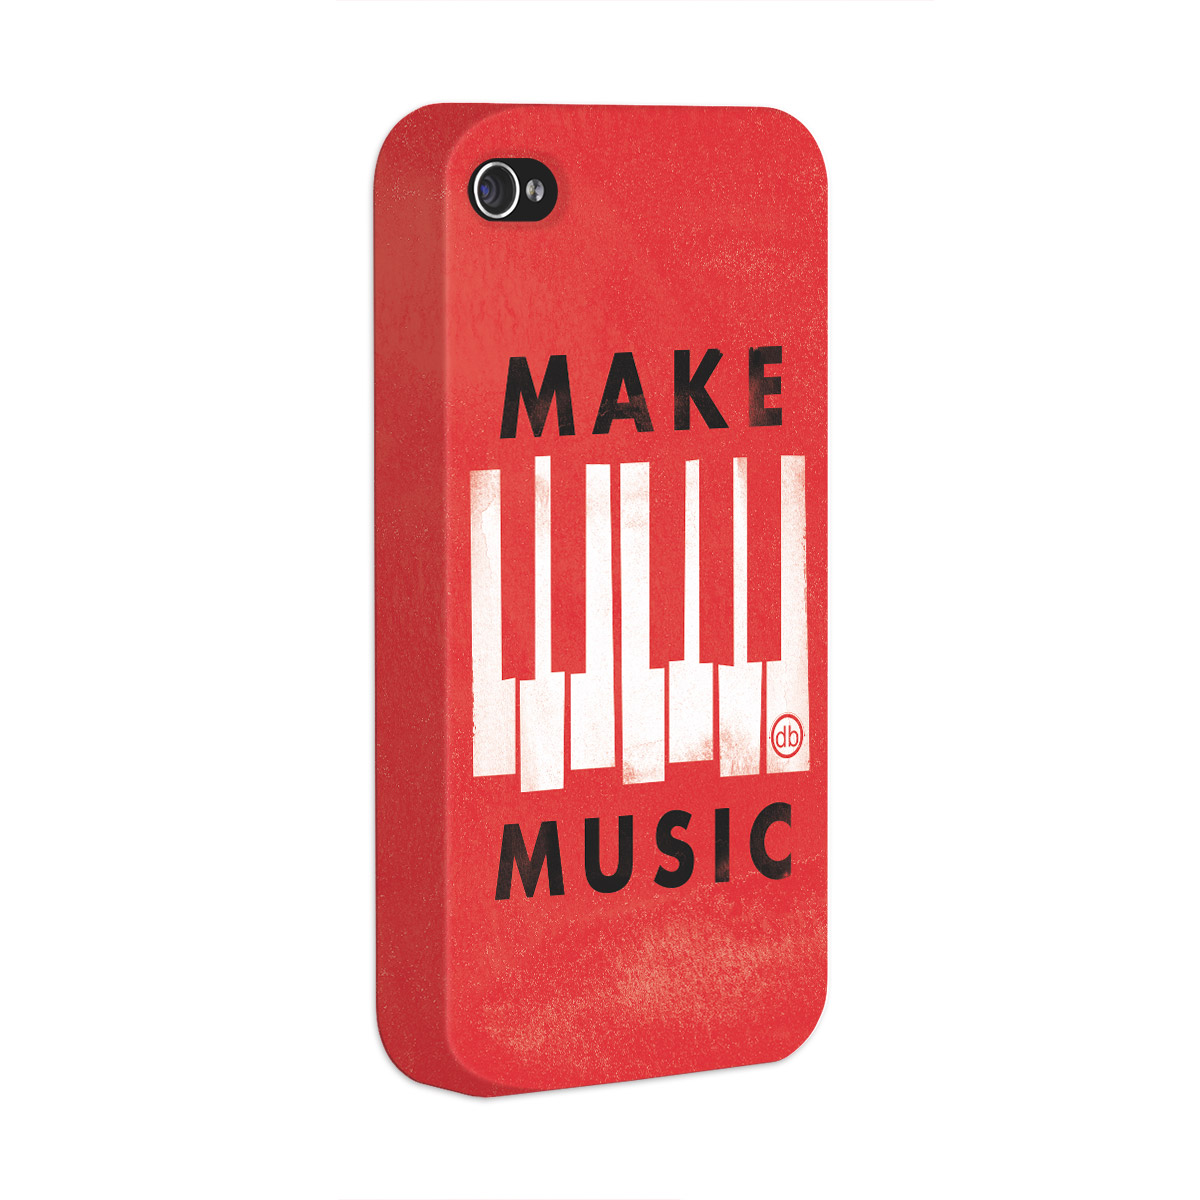 Capa para iPhone 4/4S Dudu Borges Make Music  - bandUP Store Marketplace